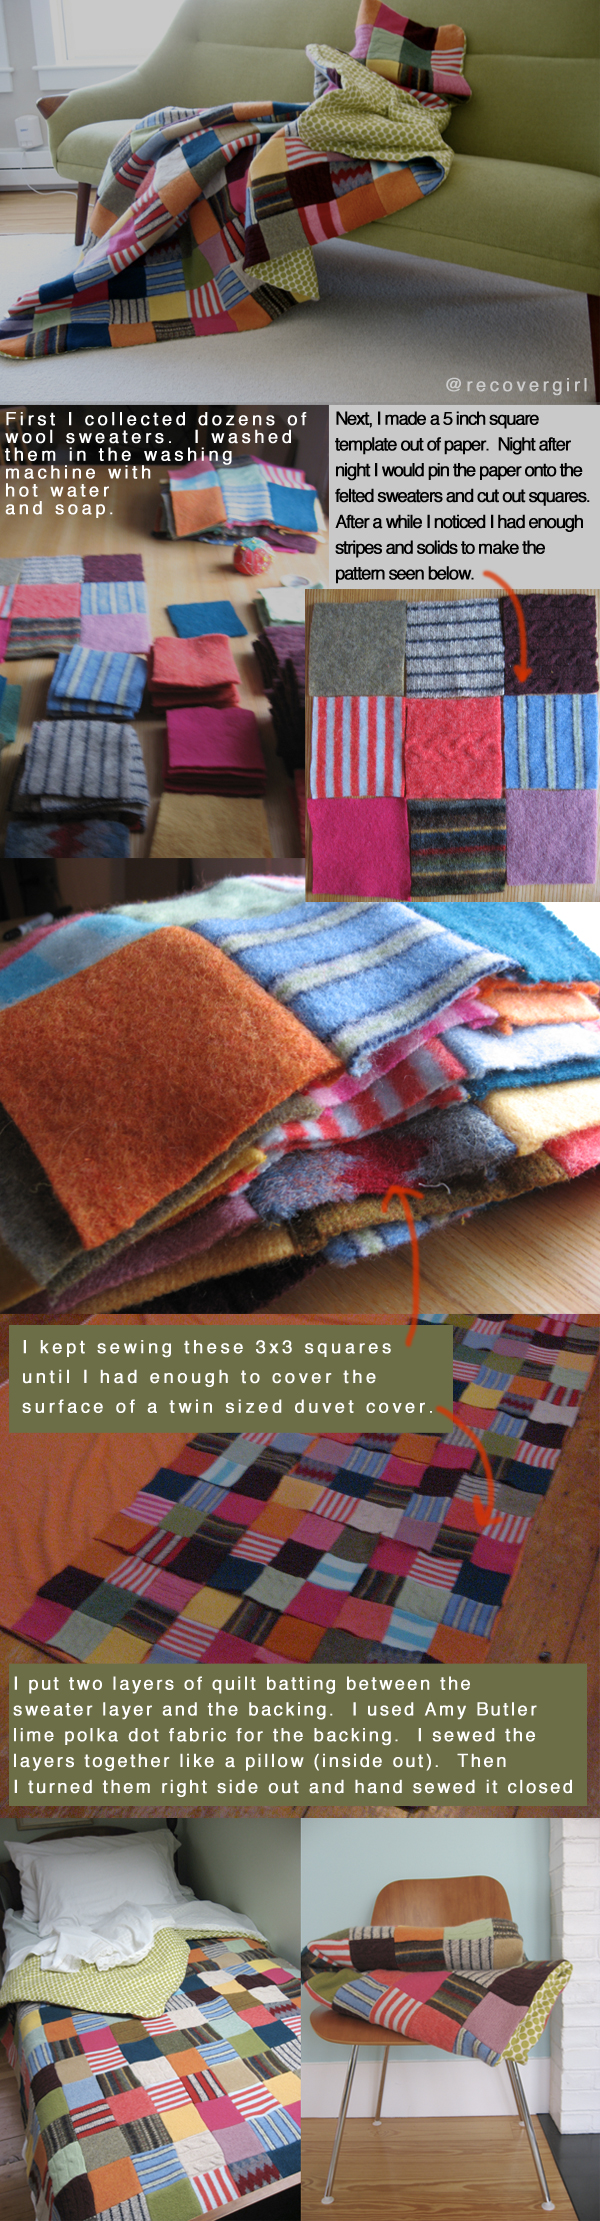 recycled wool sweaters